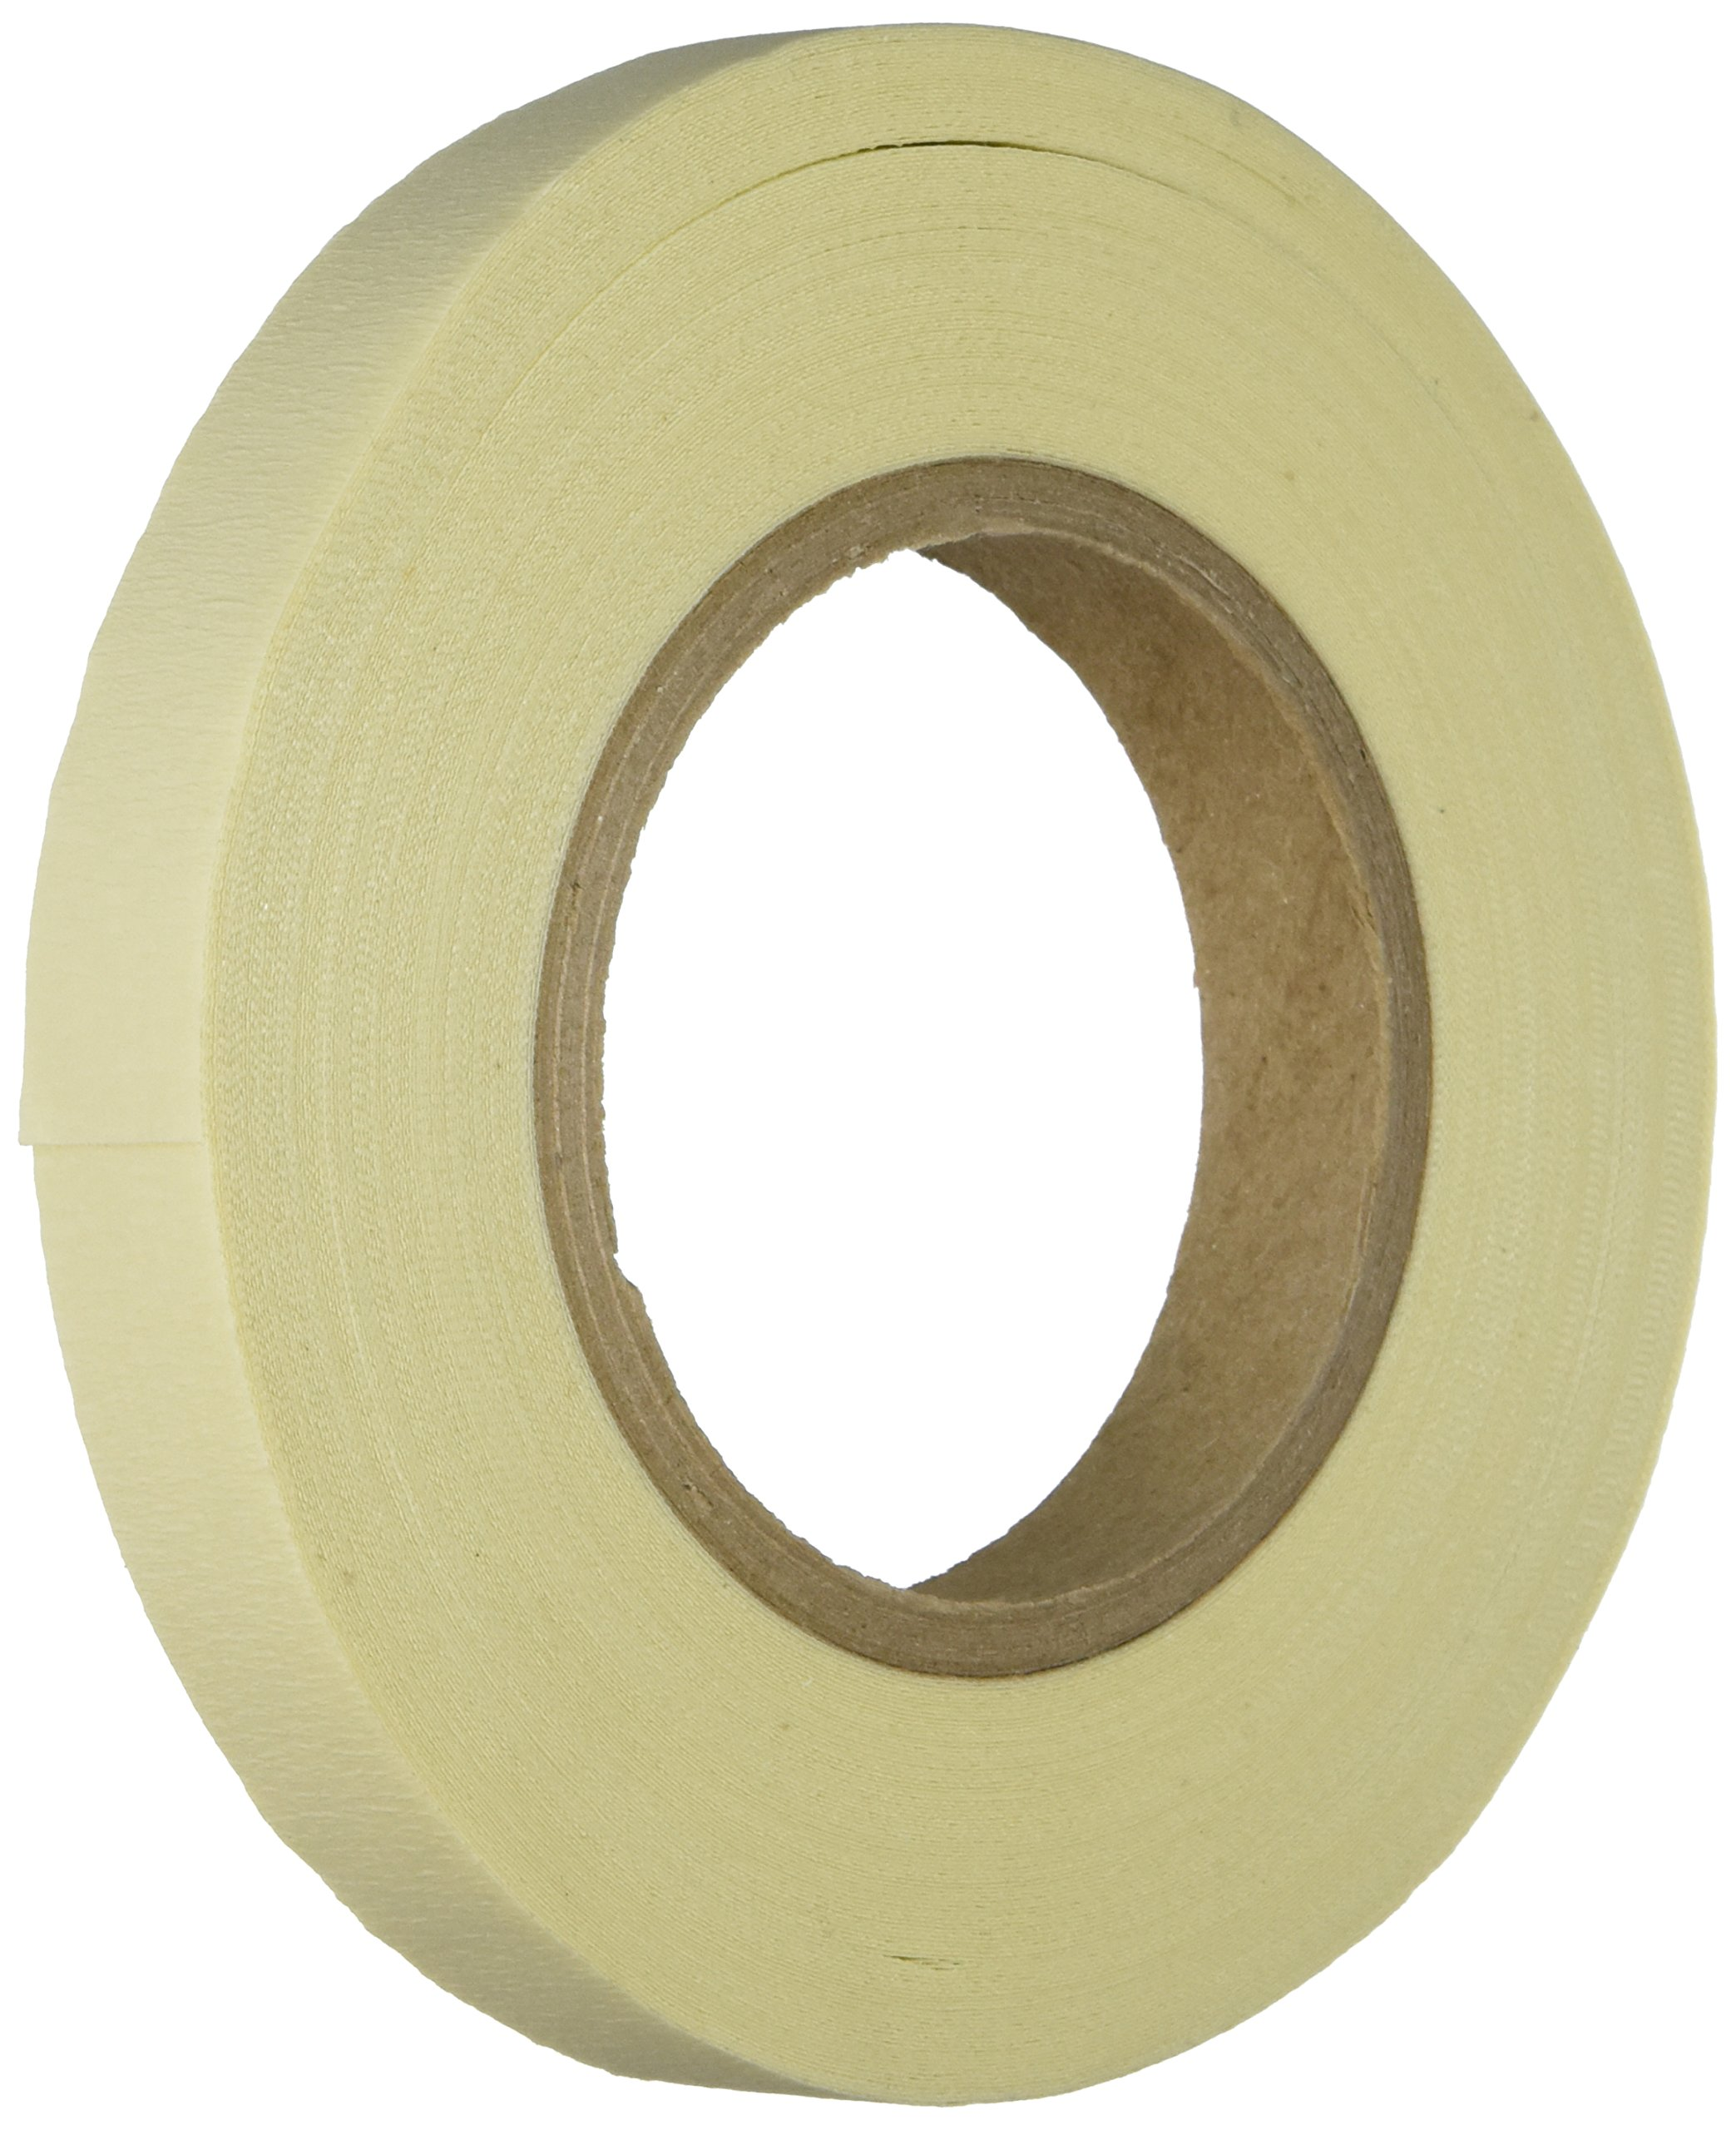 CS Hyde 17-FibG-DS Double Sided Fiberglass Tape with Silicone Adhesive, 0.75'' x 36 Yards